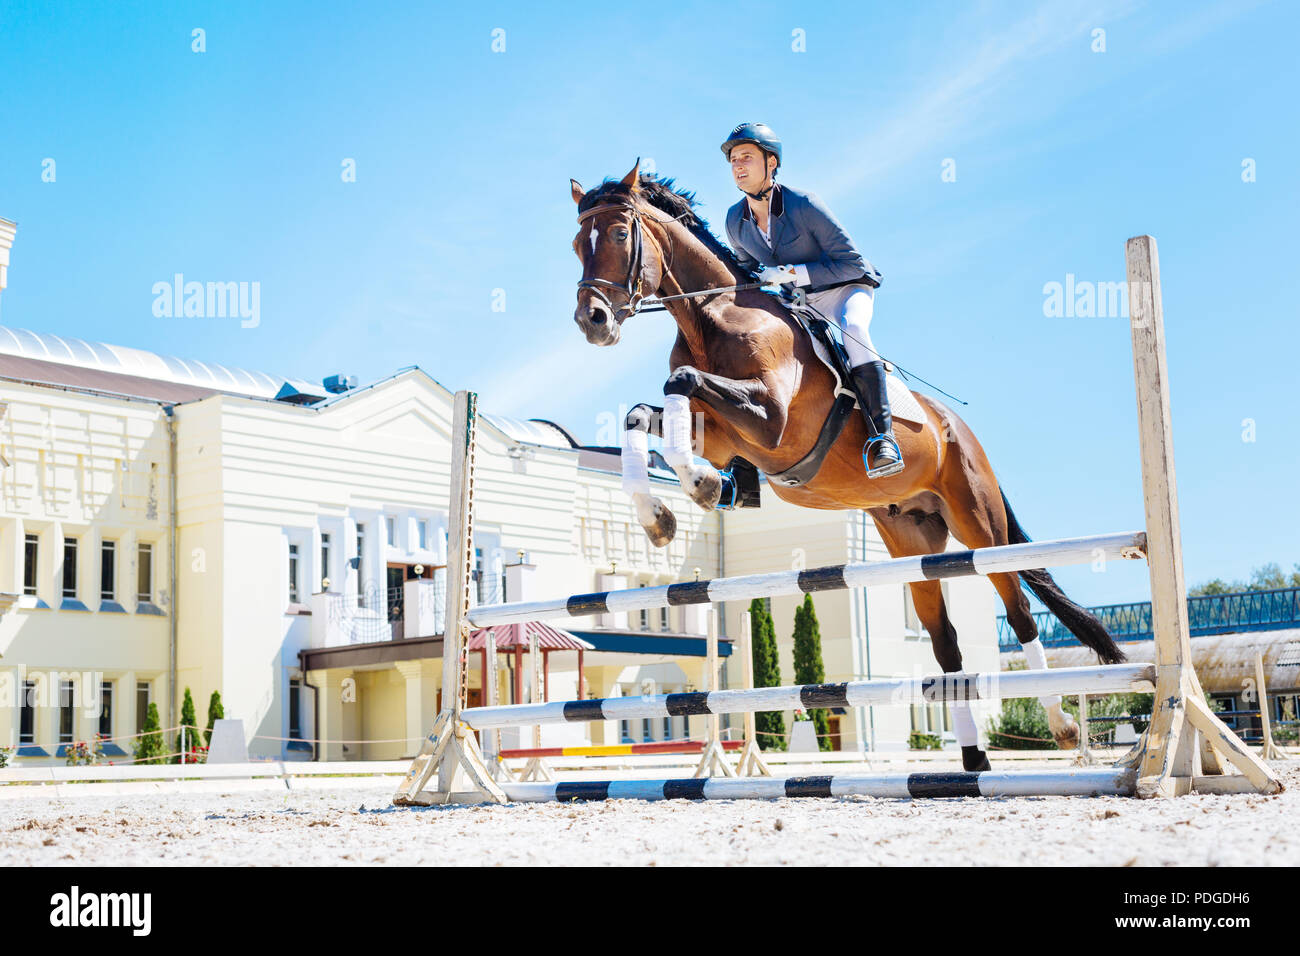 Horse man wearing blue jacket feeling excited while horse hurdling - Stock Image